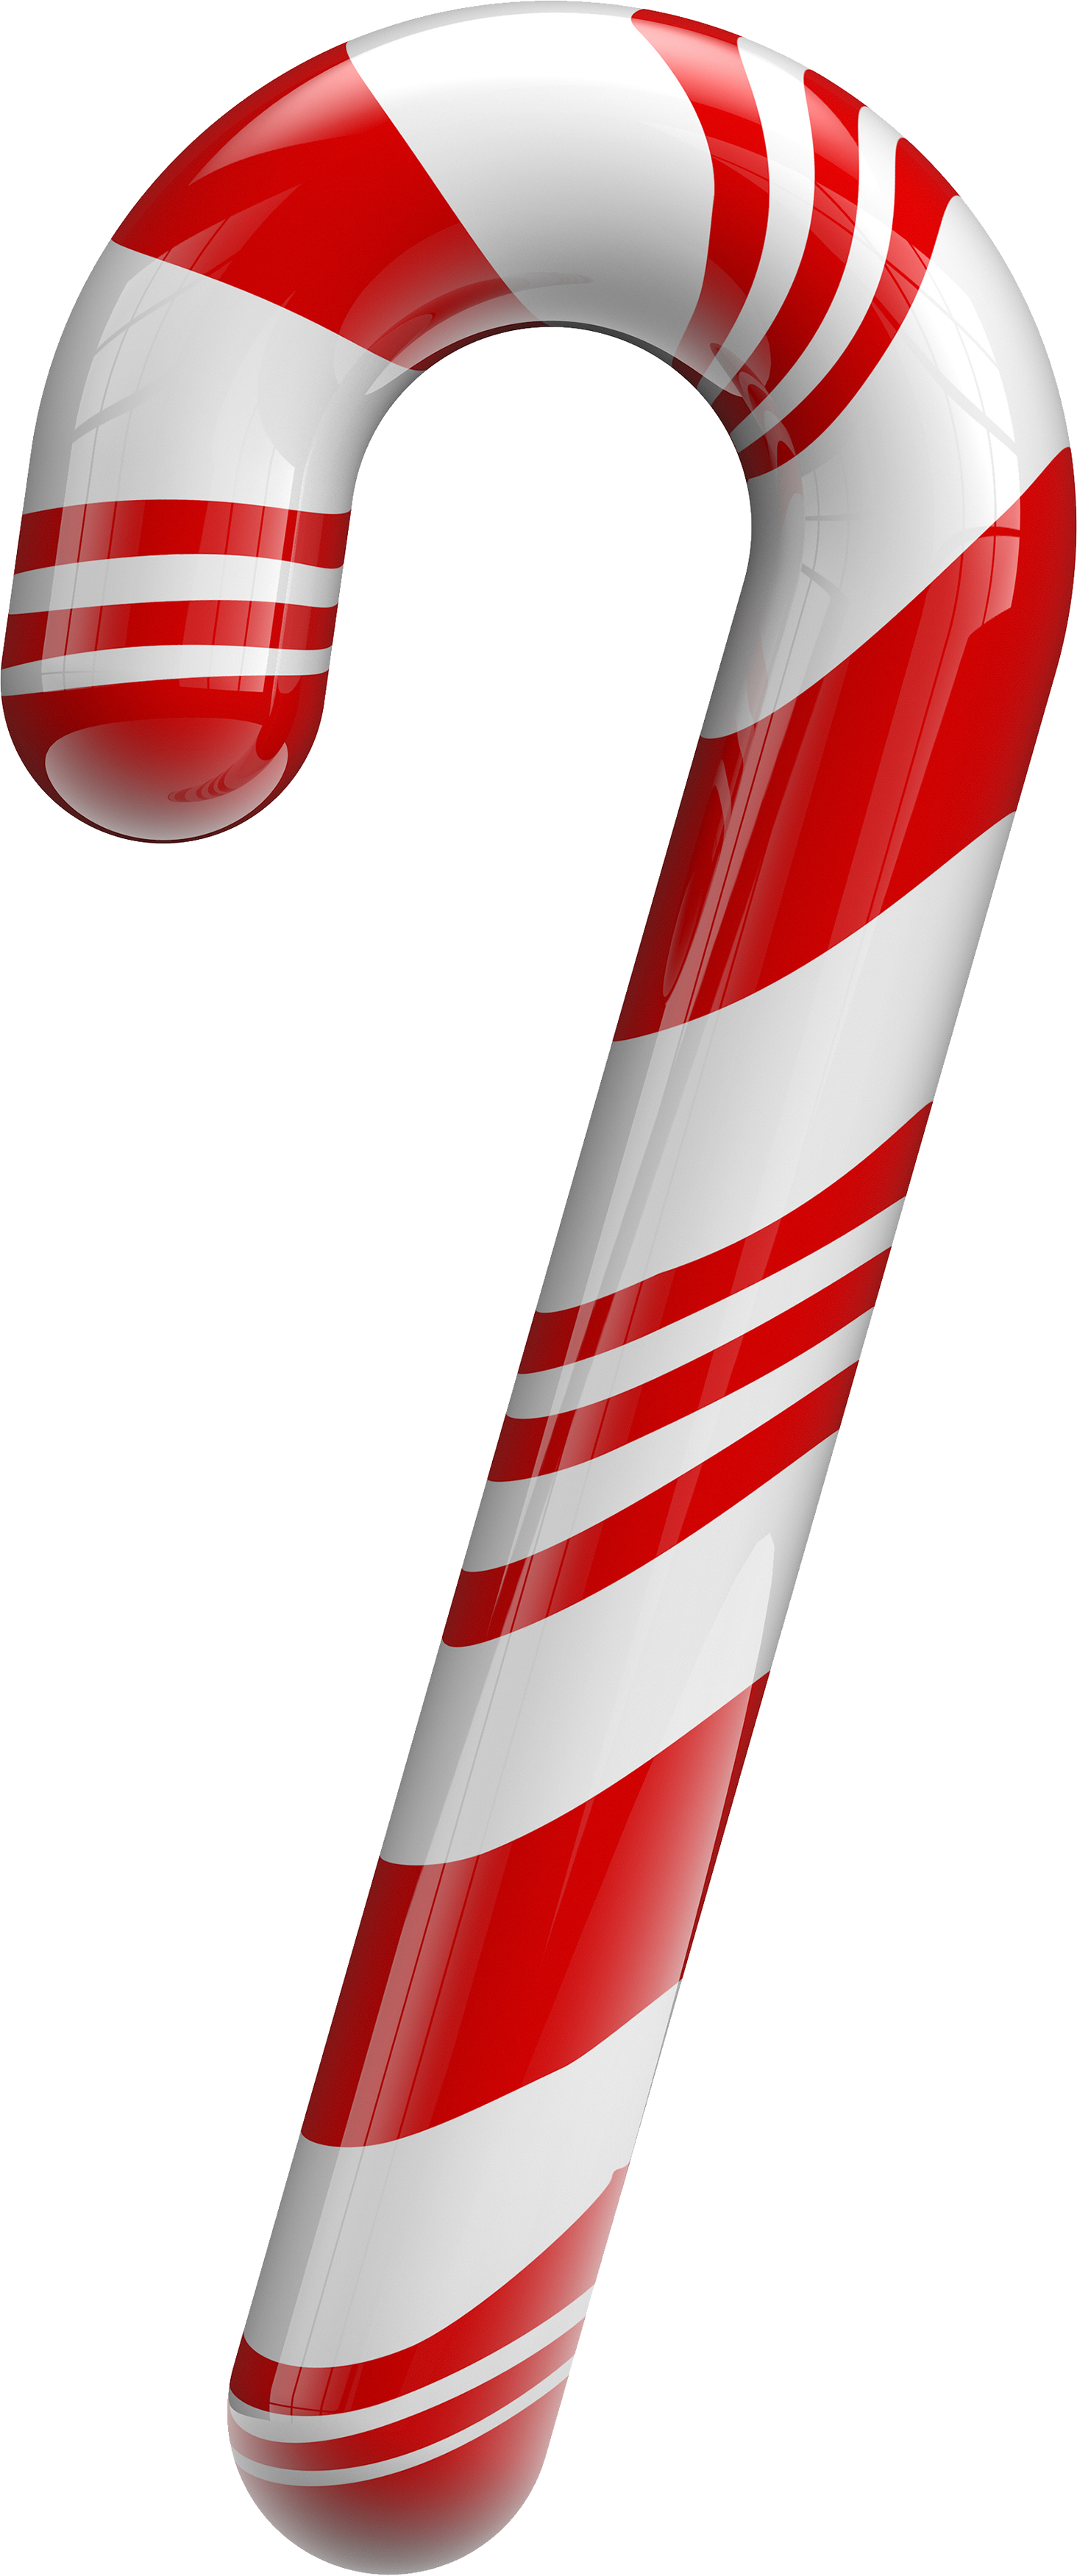 Christmas Candy Png Image Christmas Candy Download Candy Candy Cane Lollipops